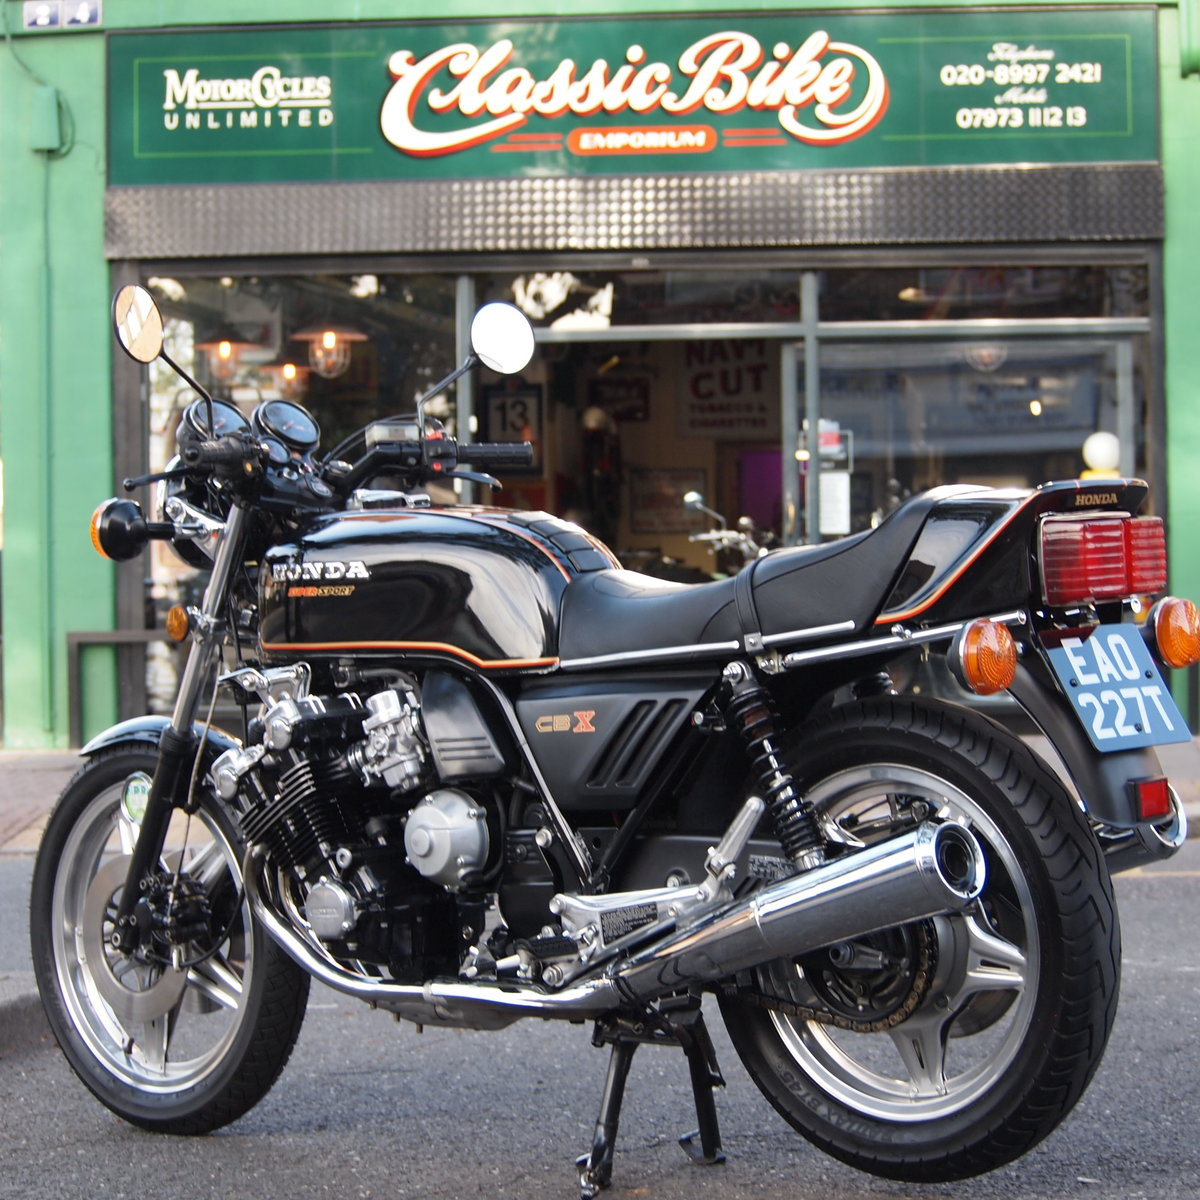 1979 Honda CBX1000Z Early Rare Black Model, Stunning Condition. For Sale (picture 1 of 6)